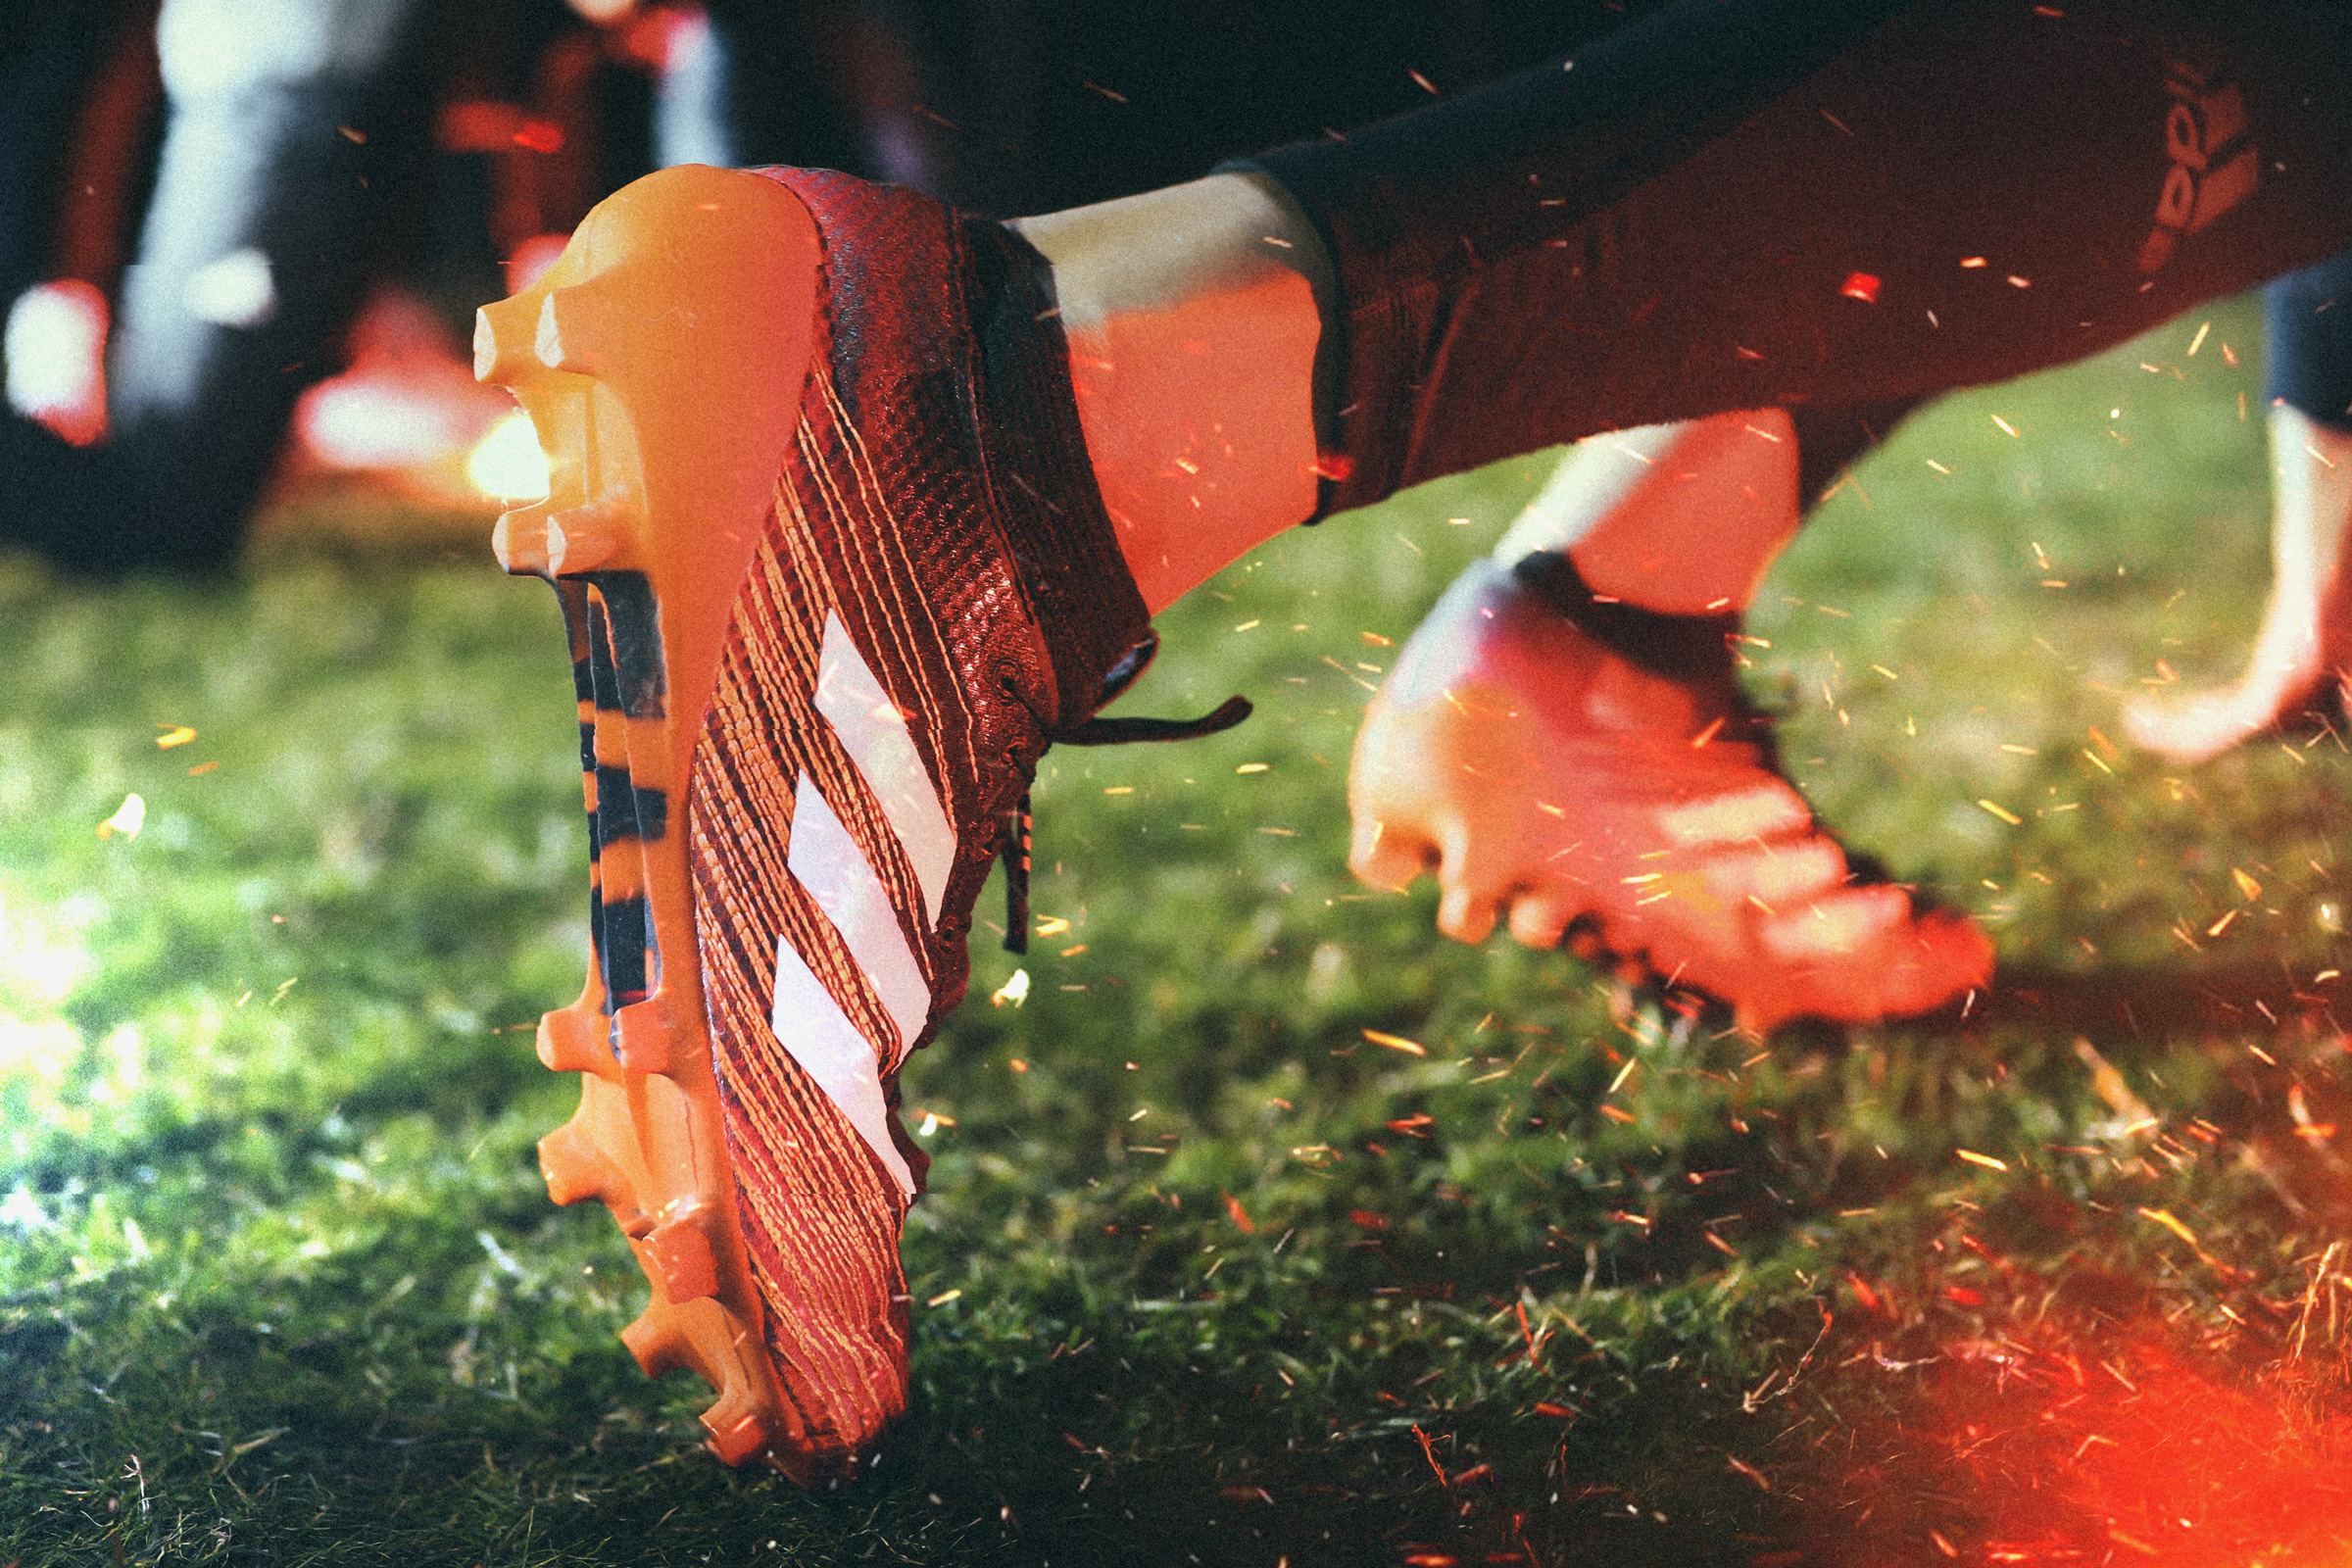 Adidas Burner. US Football. Adi Zero Cleat